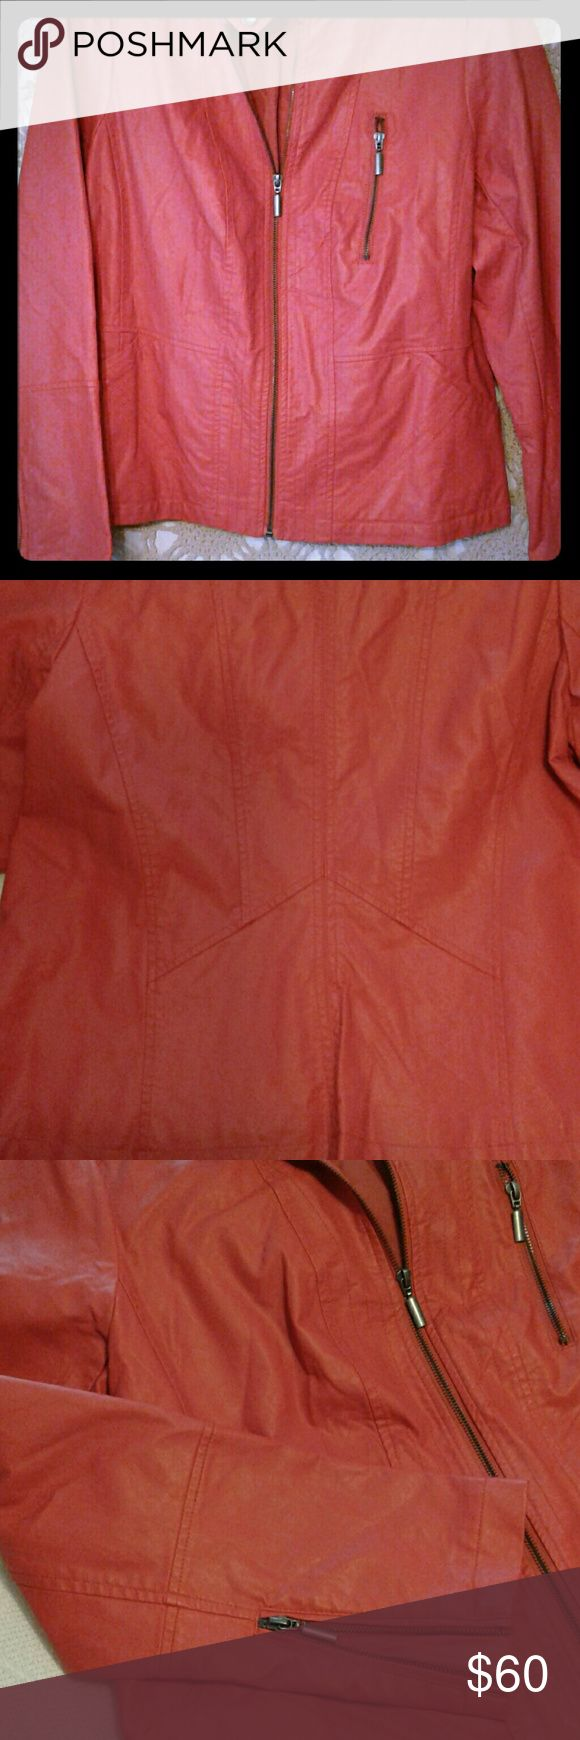 Susan Graver jacket Susan Graver orange jacket two large pockets on the front one zipper pocket on the chest zippers on the sleeve photos does not do this jacket Justice it's a beautiful Orange beautiful jacket overall in perfect condition like new Susan Graver Jackets & Coats